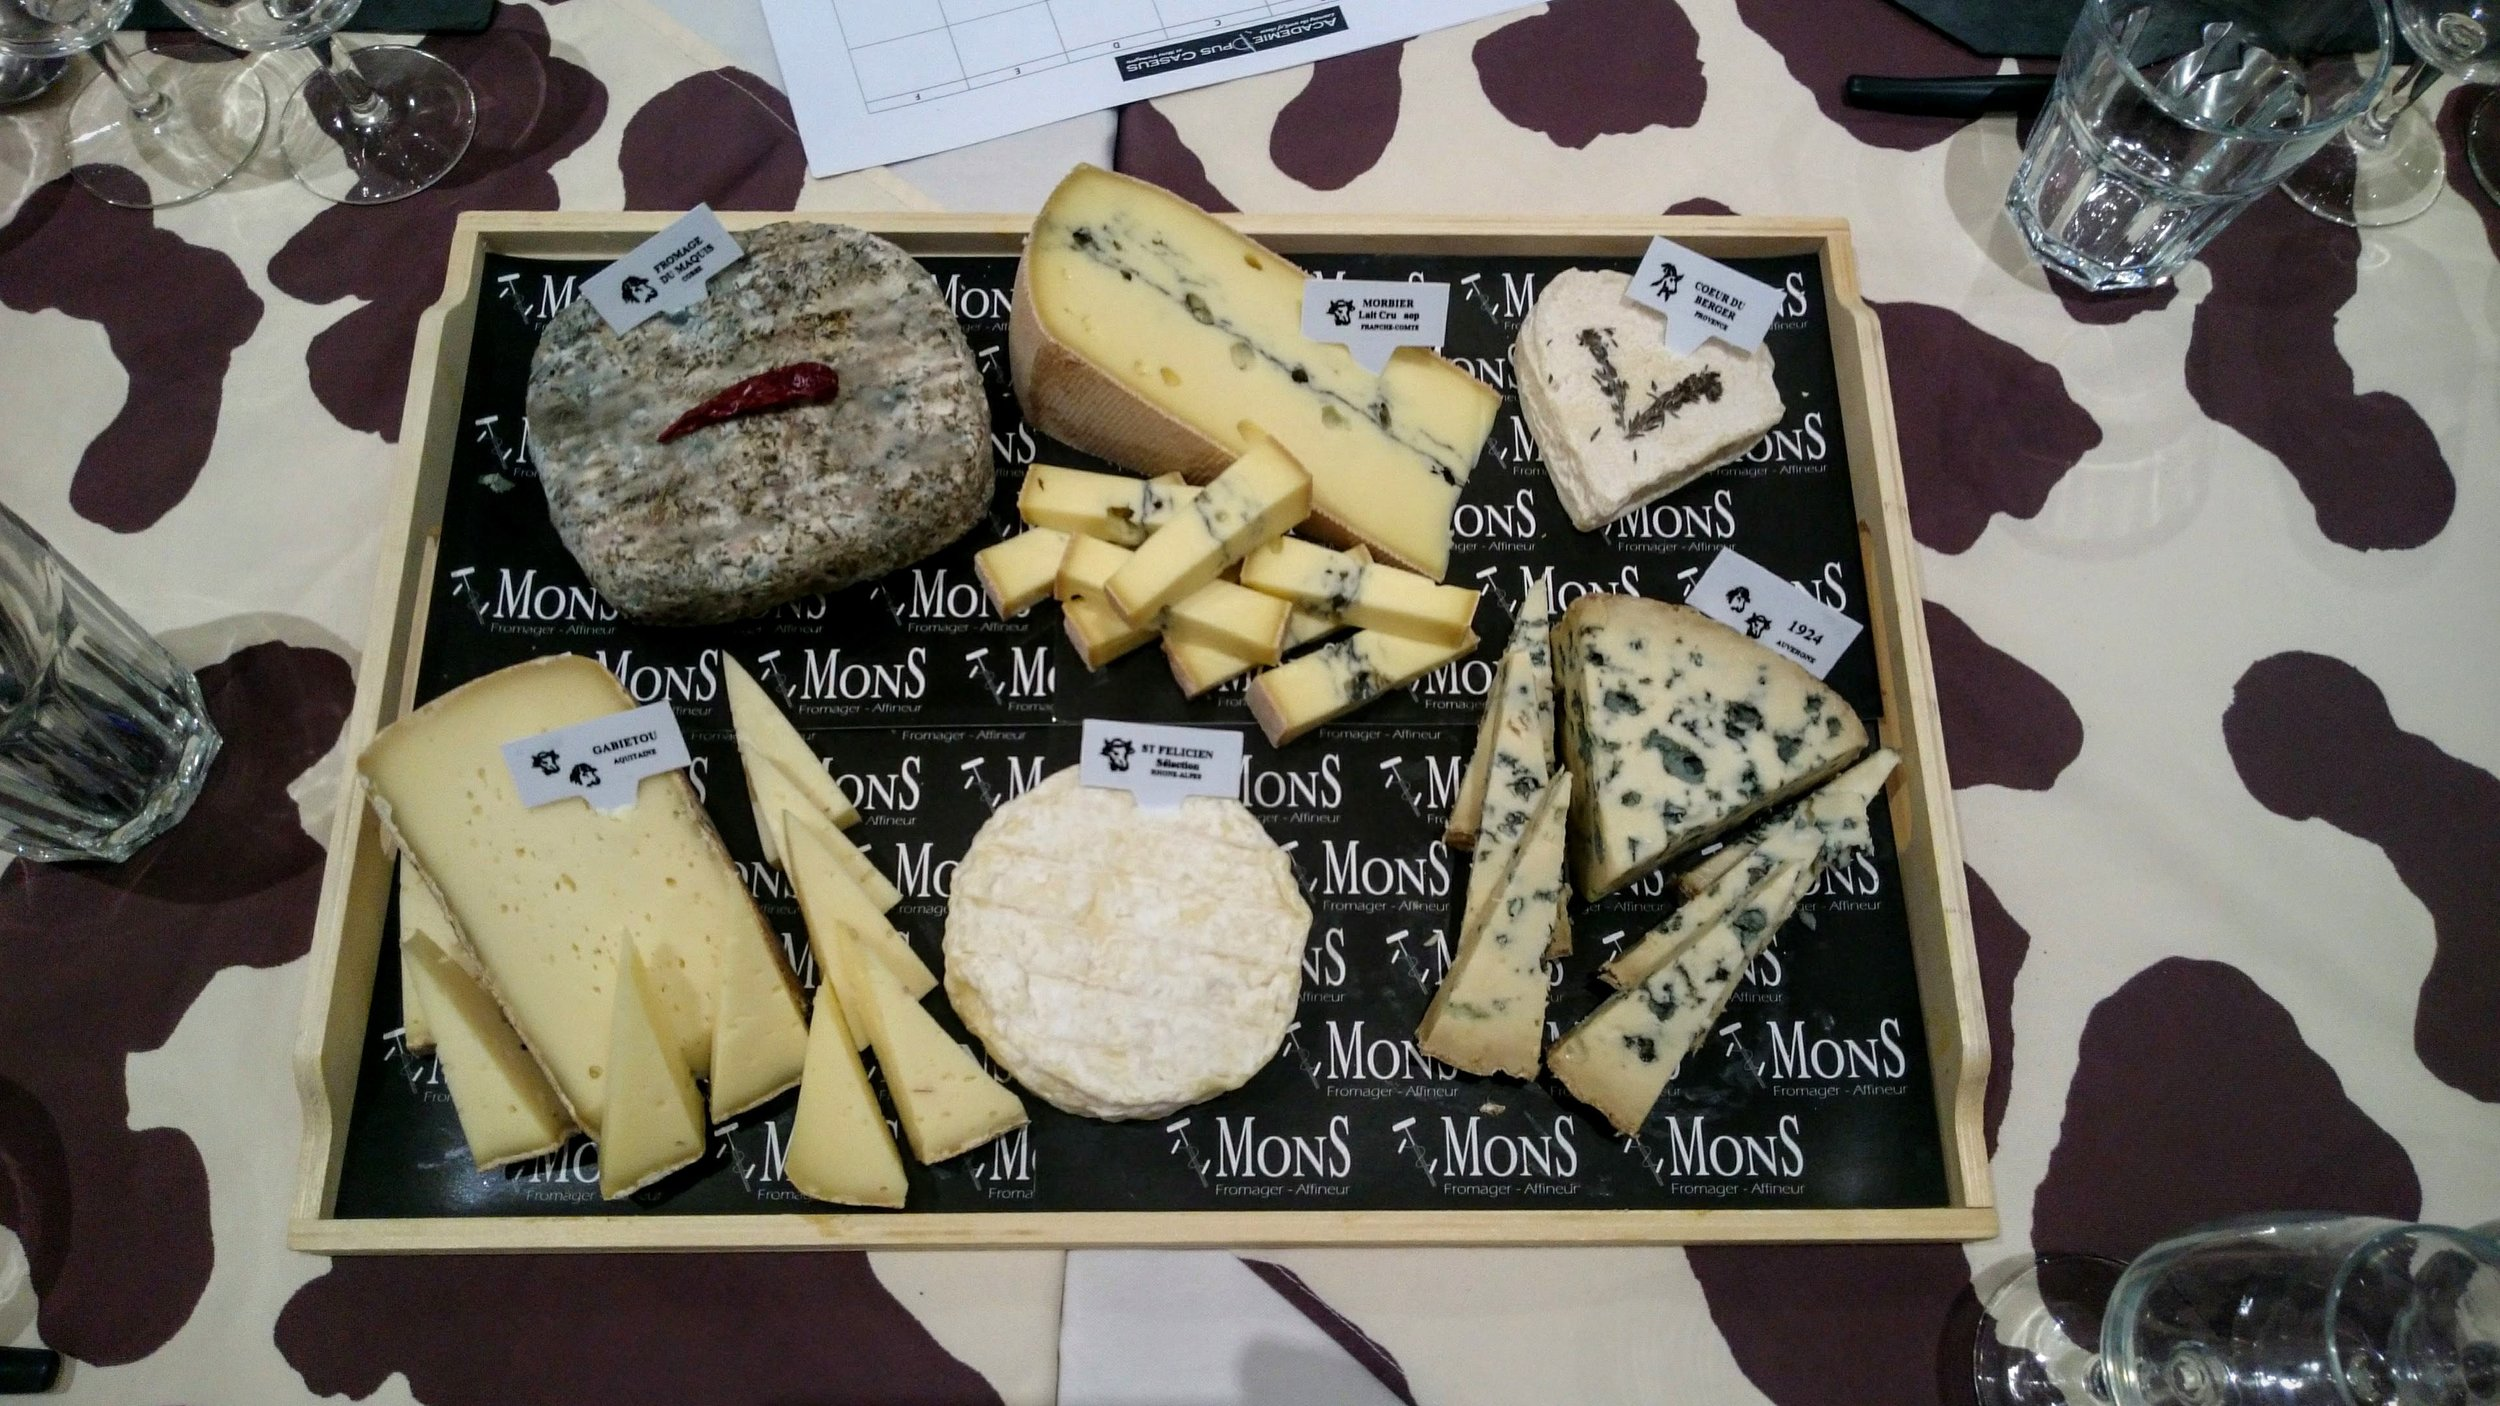 Last tasting, from top left: Fromage de Maquis (sheep), Morbier (cow), Coeur de Berger (goat), 1924 (sheep and cos), Saint-Marcellin (cow), Gabietou (sheep and cow).